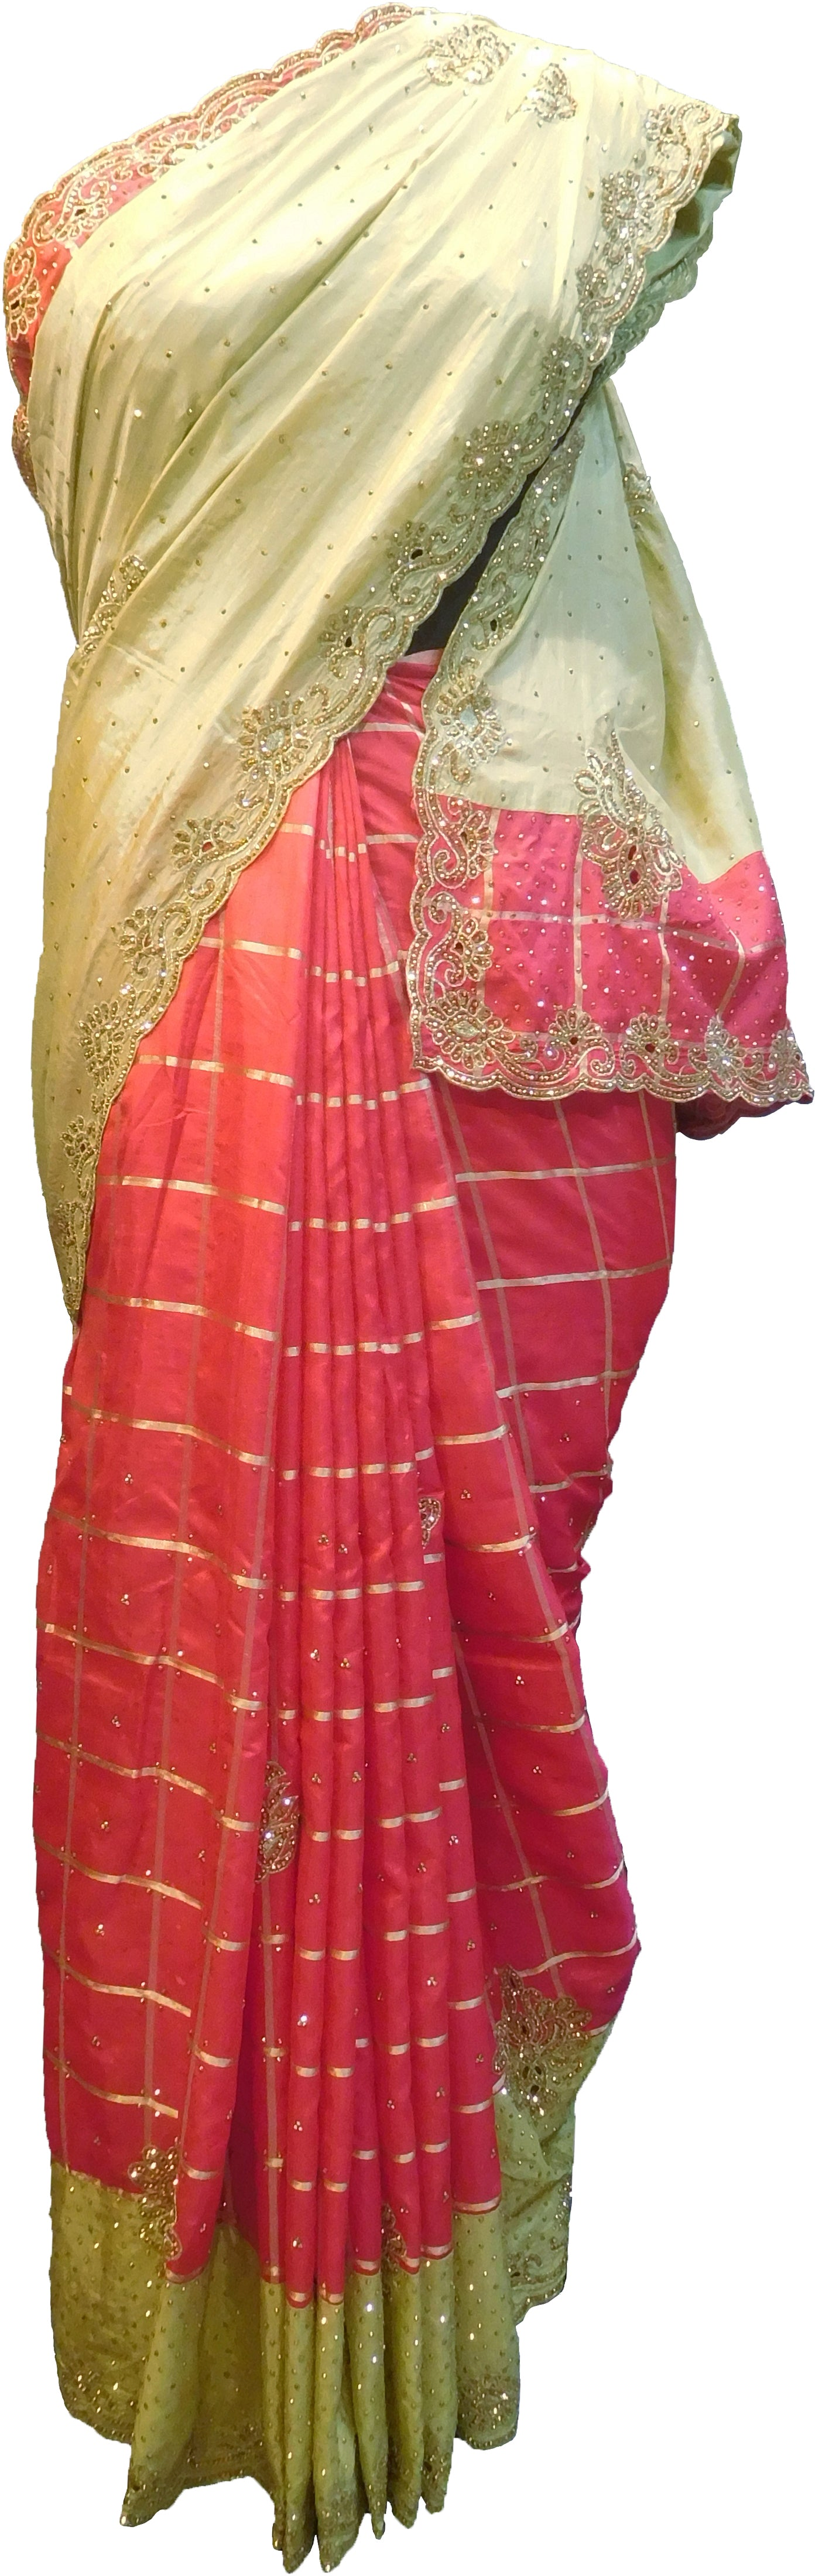 SMSAREE Beige & Pink Designer Wedding Partywear Silk Stone & Zari Hand Embroidery Work Bridal Saree Sari With Blouse Piece F310